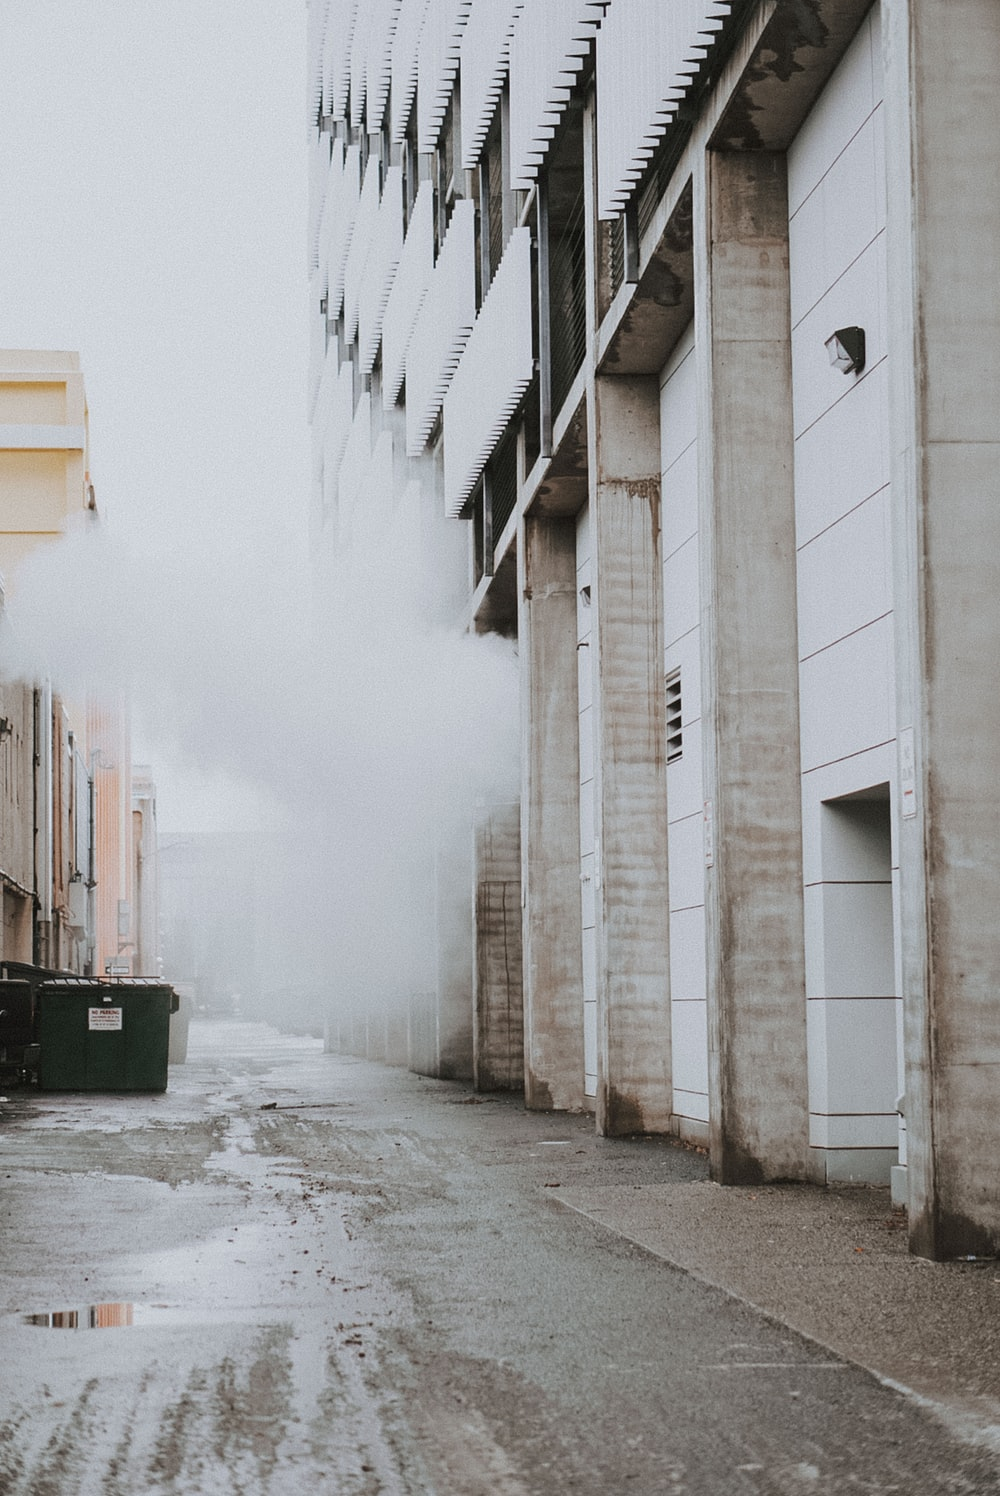 smoke coming out from building